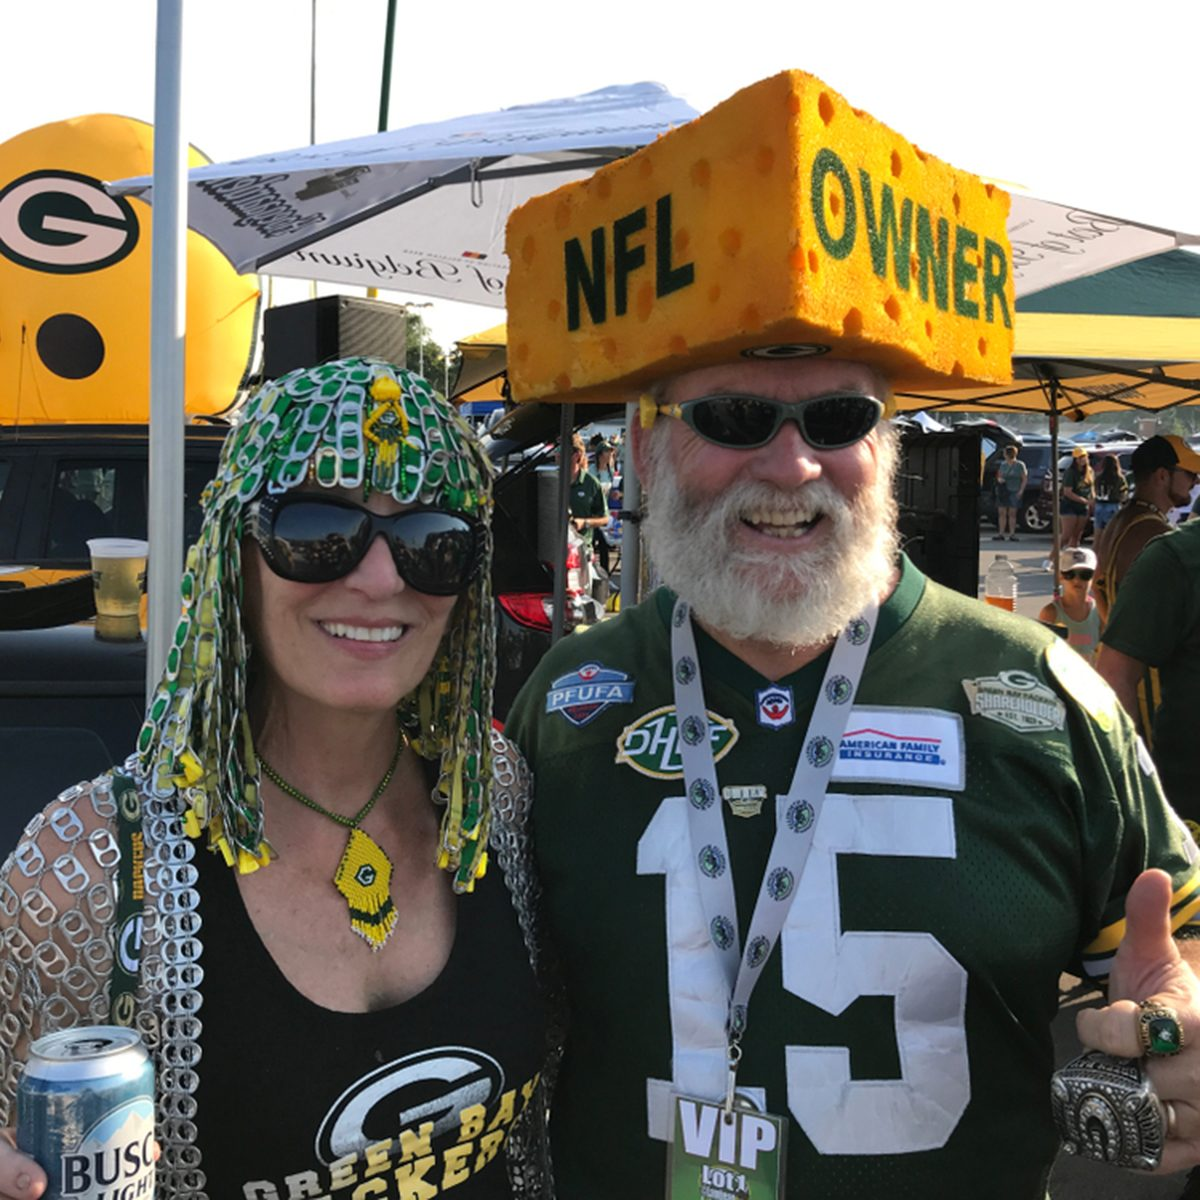 Packer fans during at tailgate party at Lambeau Field.